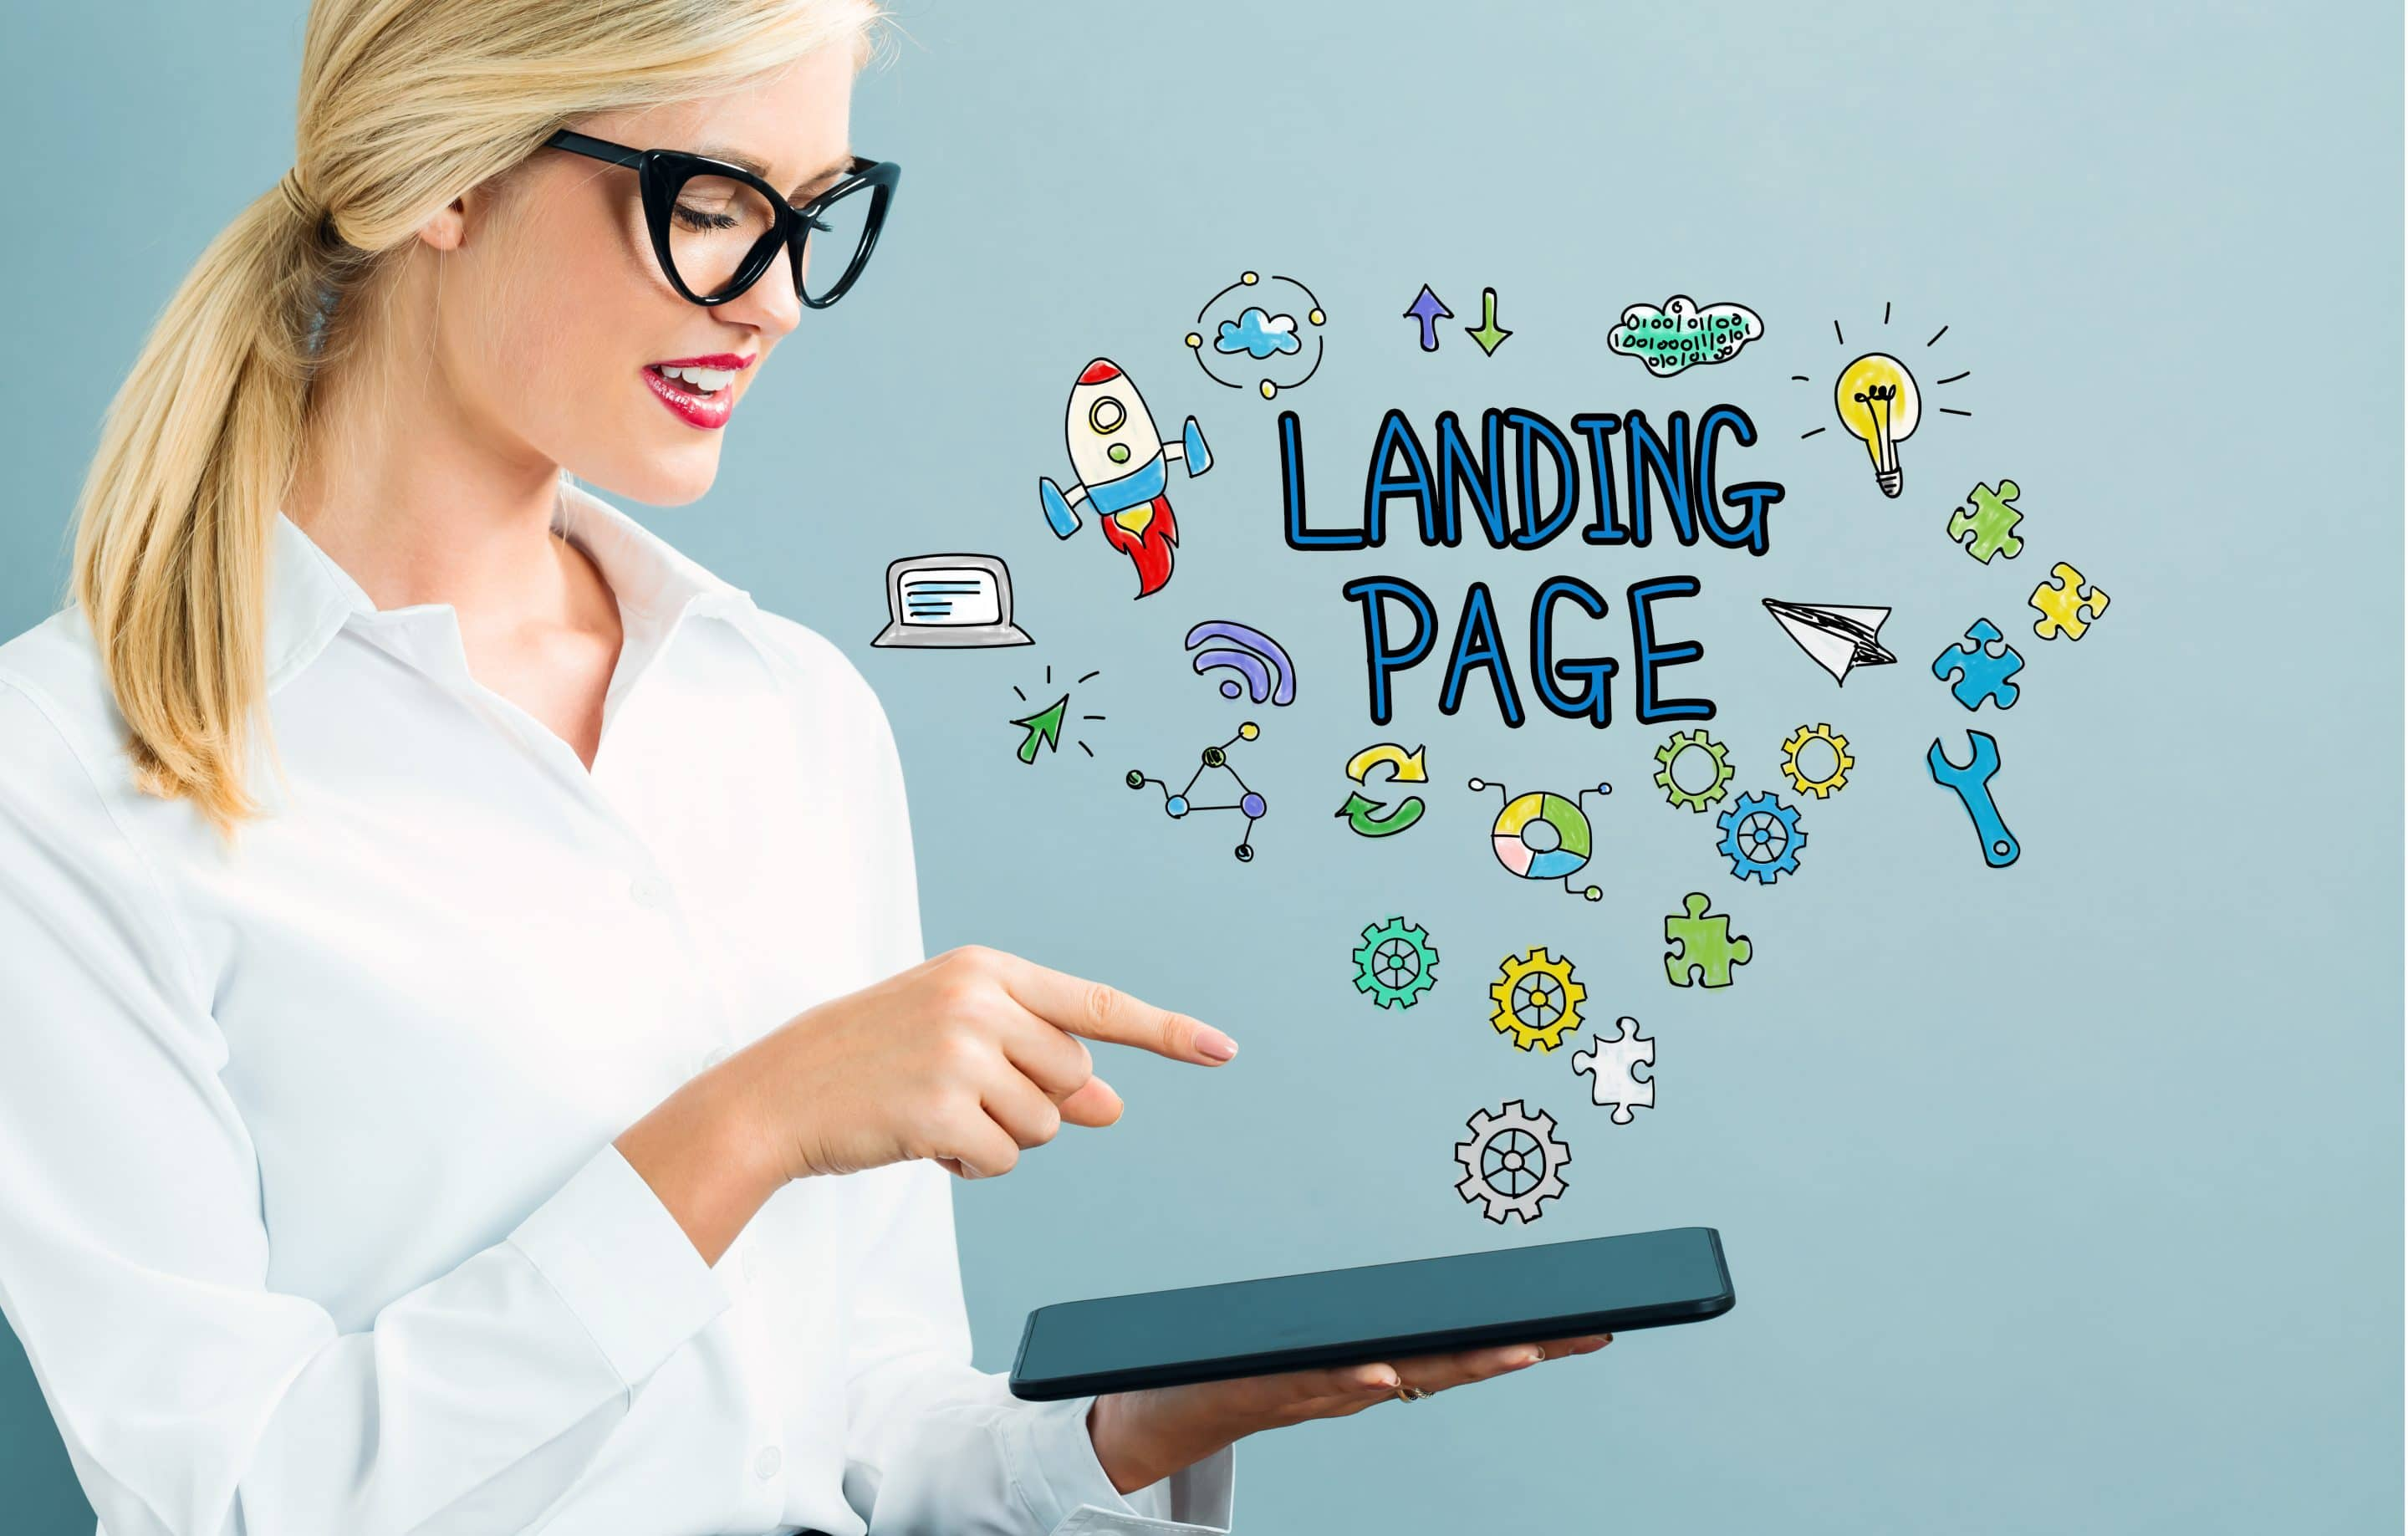 Digital Marketing Tips: Why You Need a Successful Landing Page and How to Create One